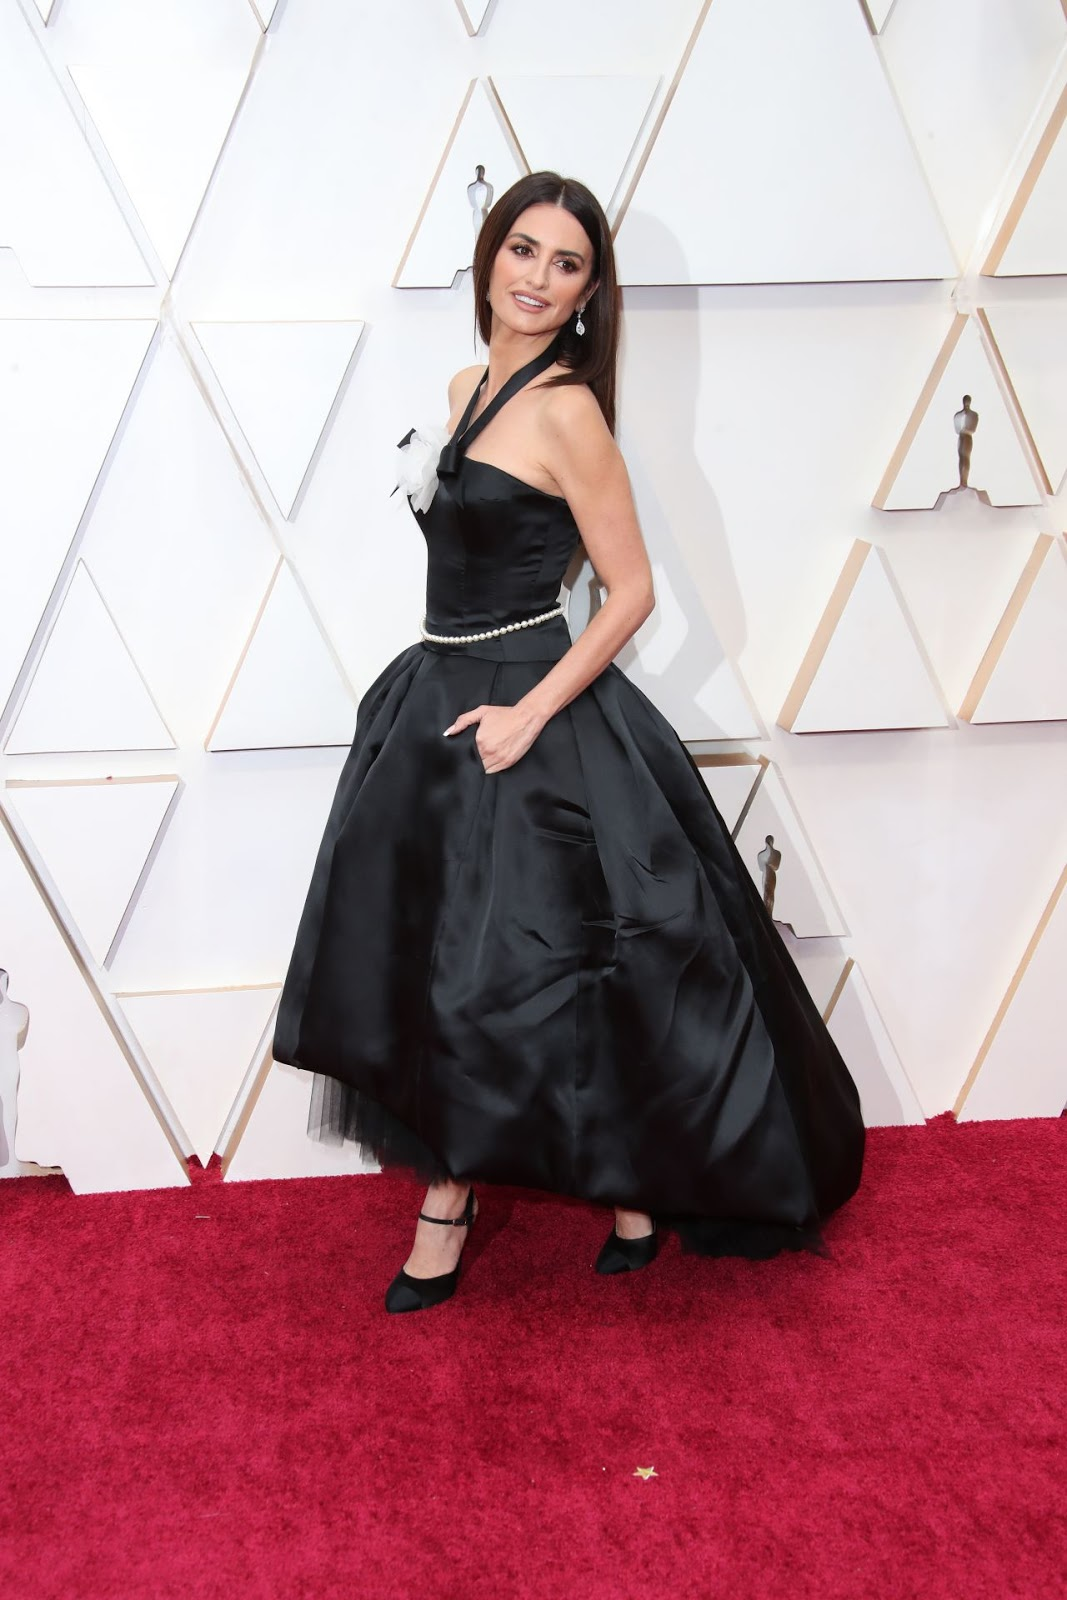 Penélope Cruz Makes Glamorous Red Carpet Entrance in Chanel at 2020 Oscars